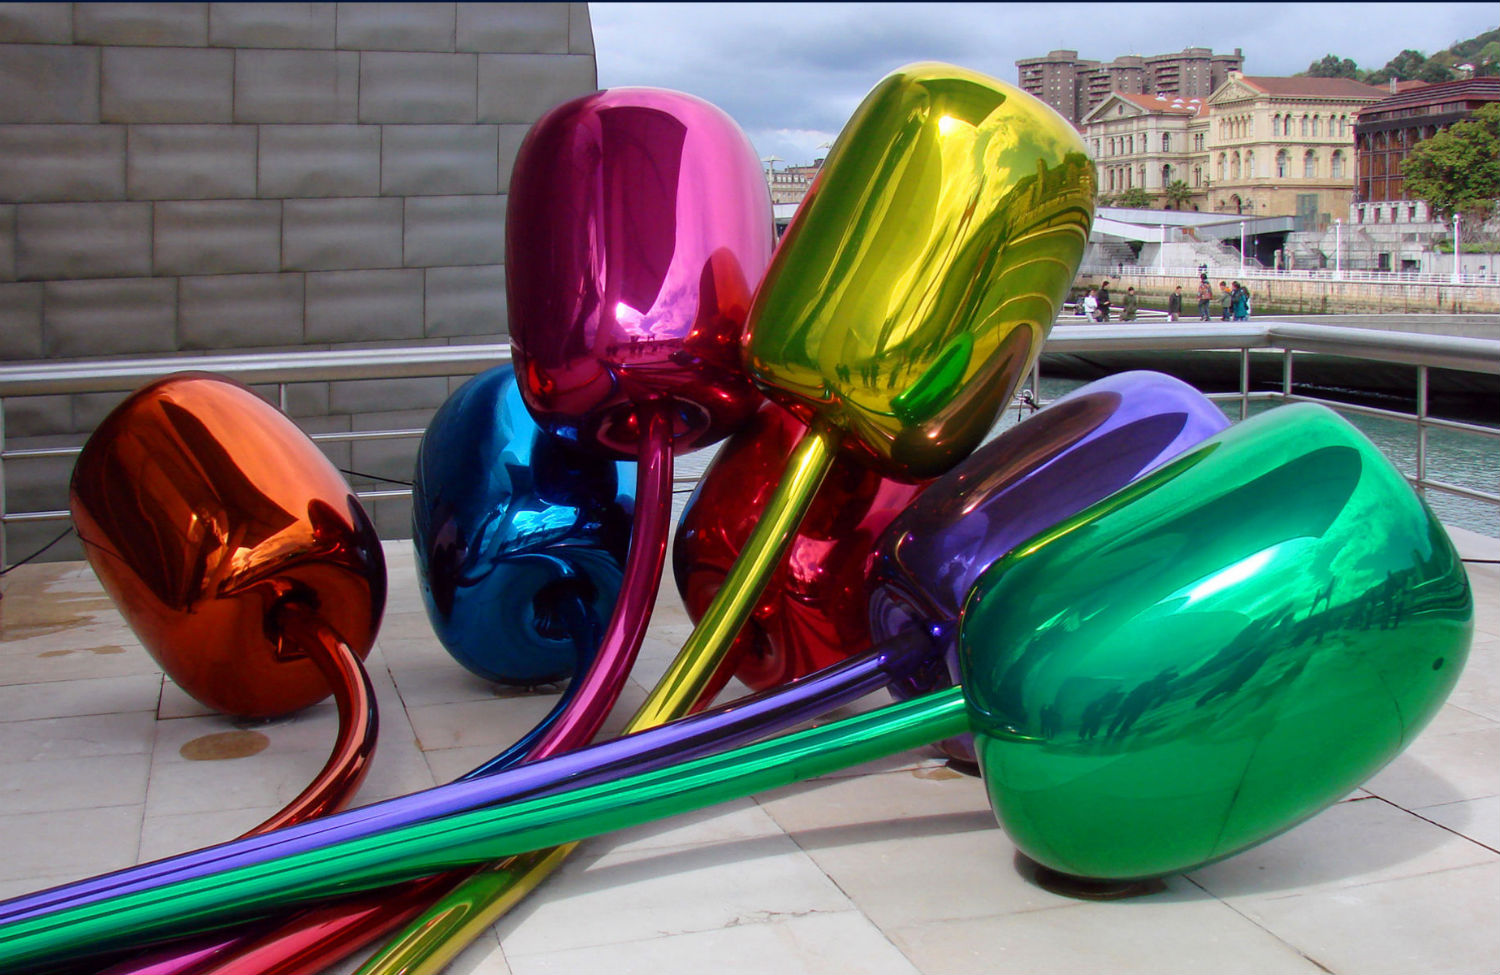 Arthur-Danto's-Critique-of-the-'Aesthetic-Terrorism'-of-Jeff-Koons